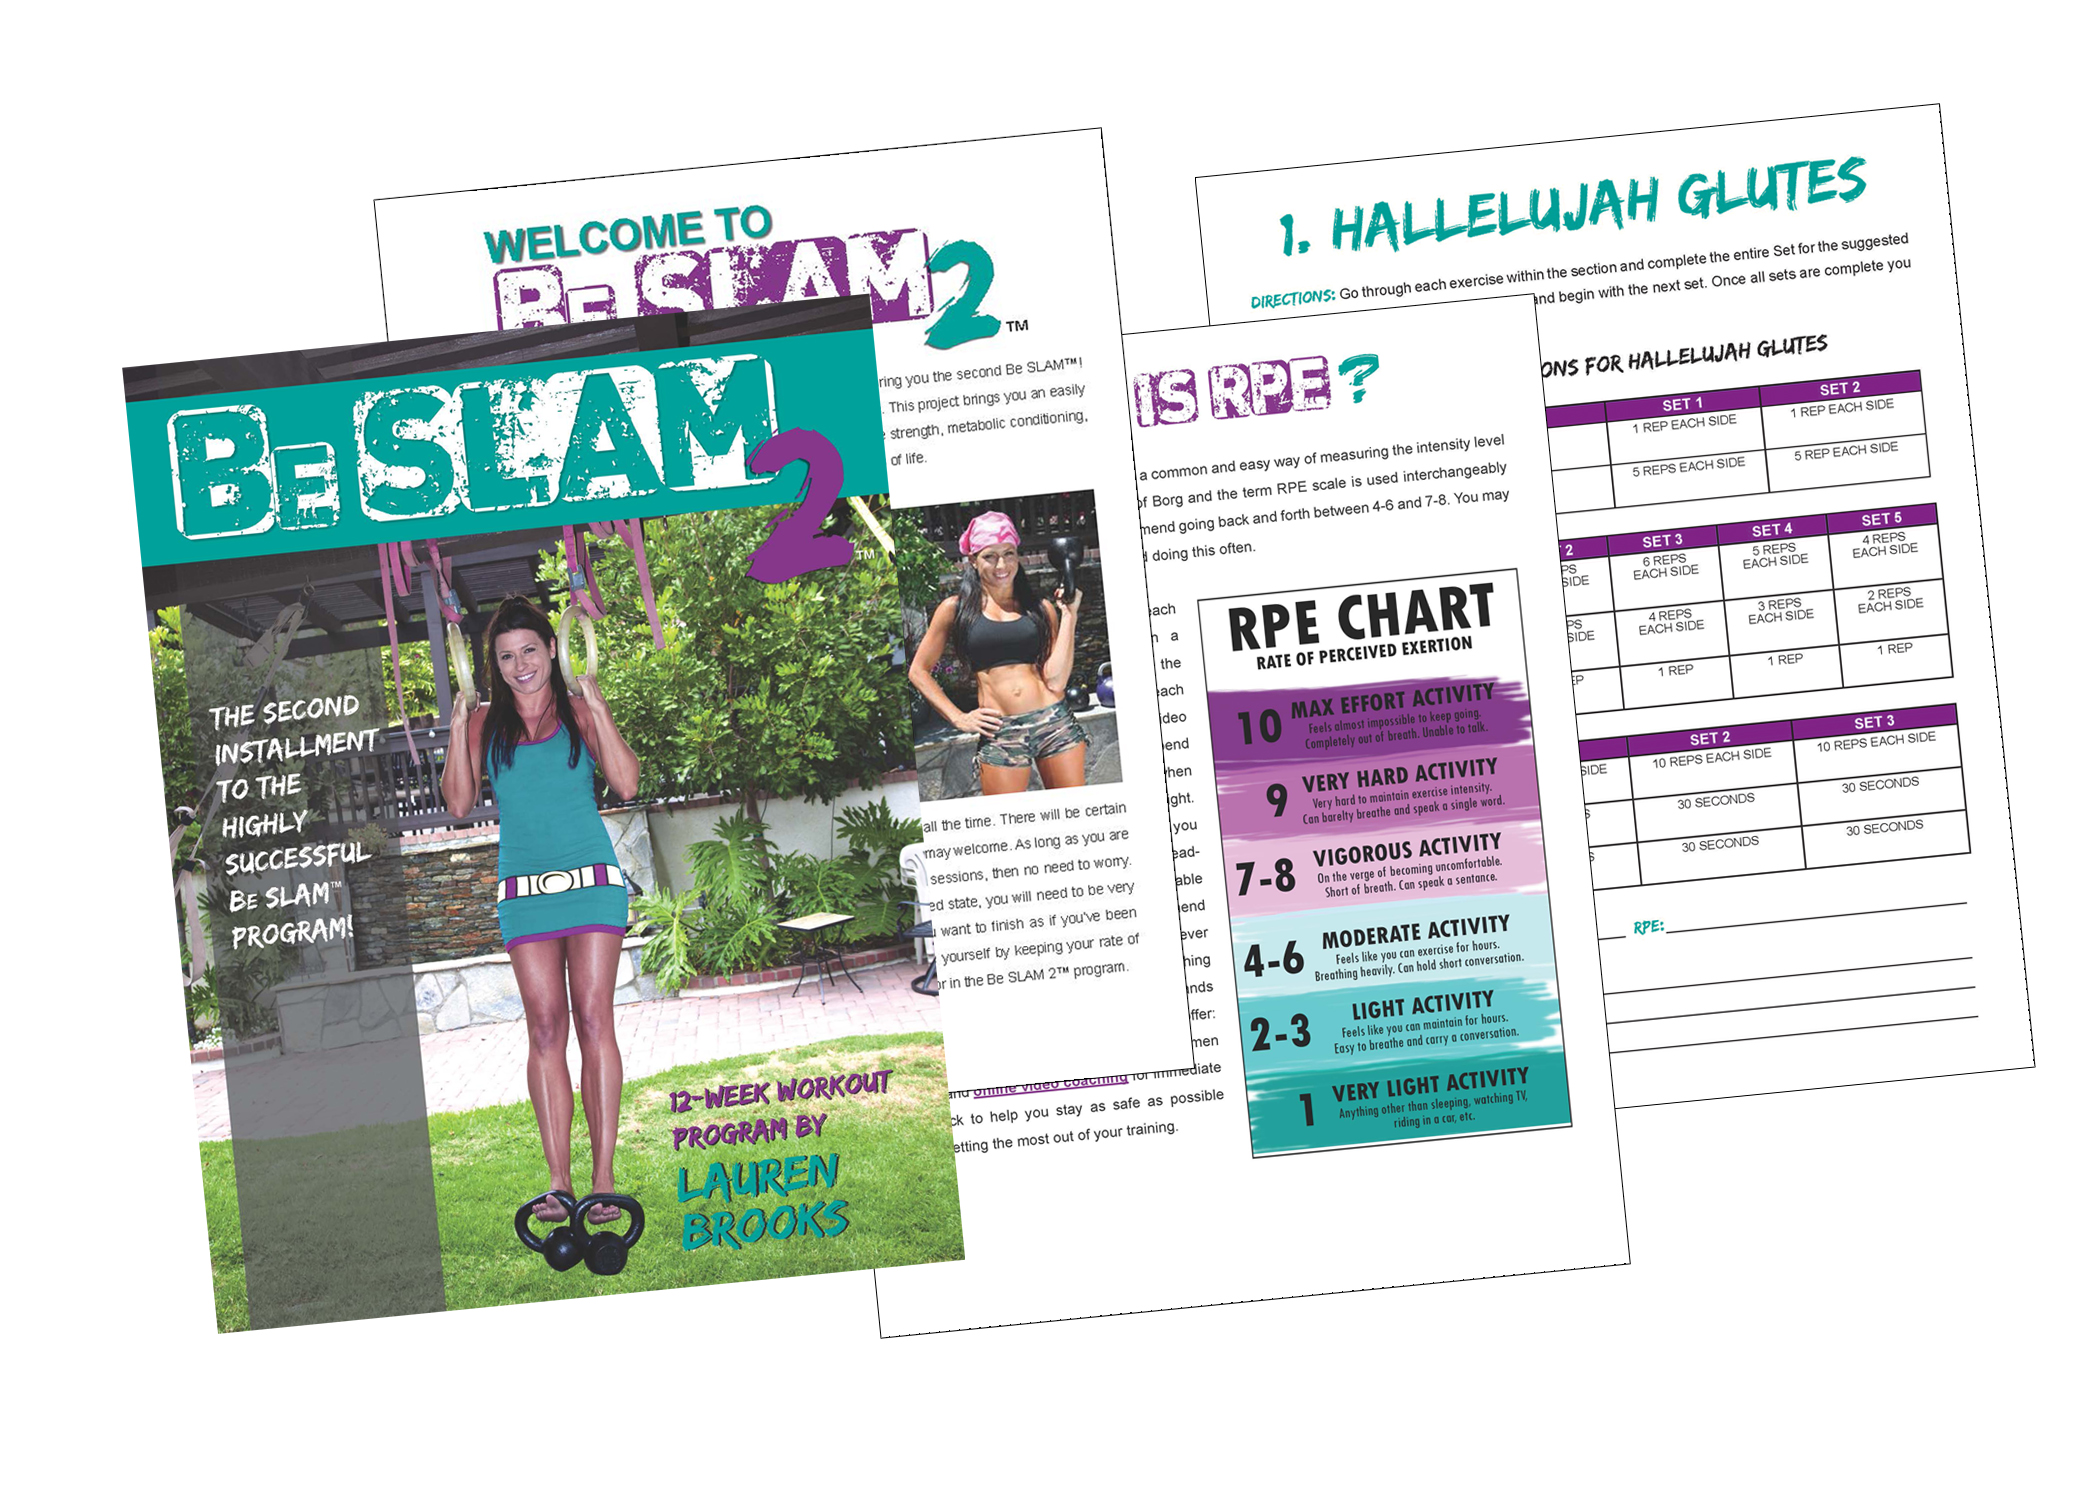 Be SLAM 2 - The hottest 12 week strength program